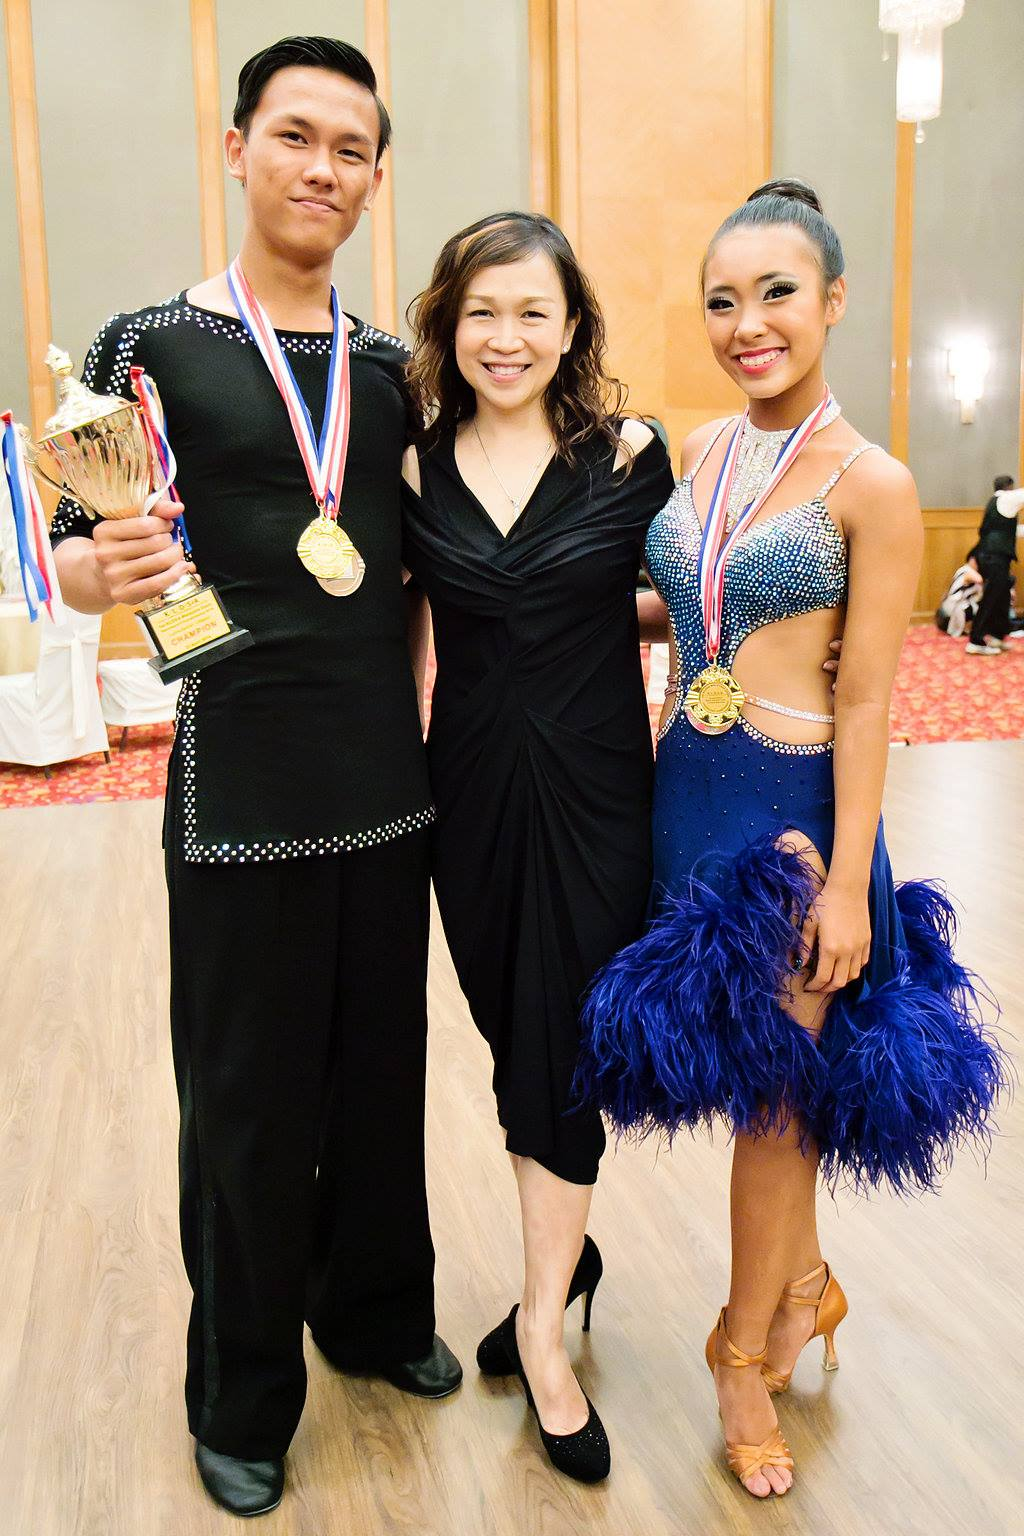 youth dance champions